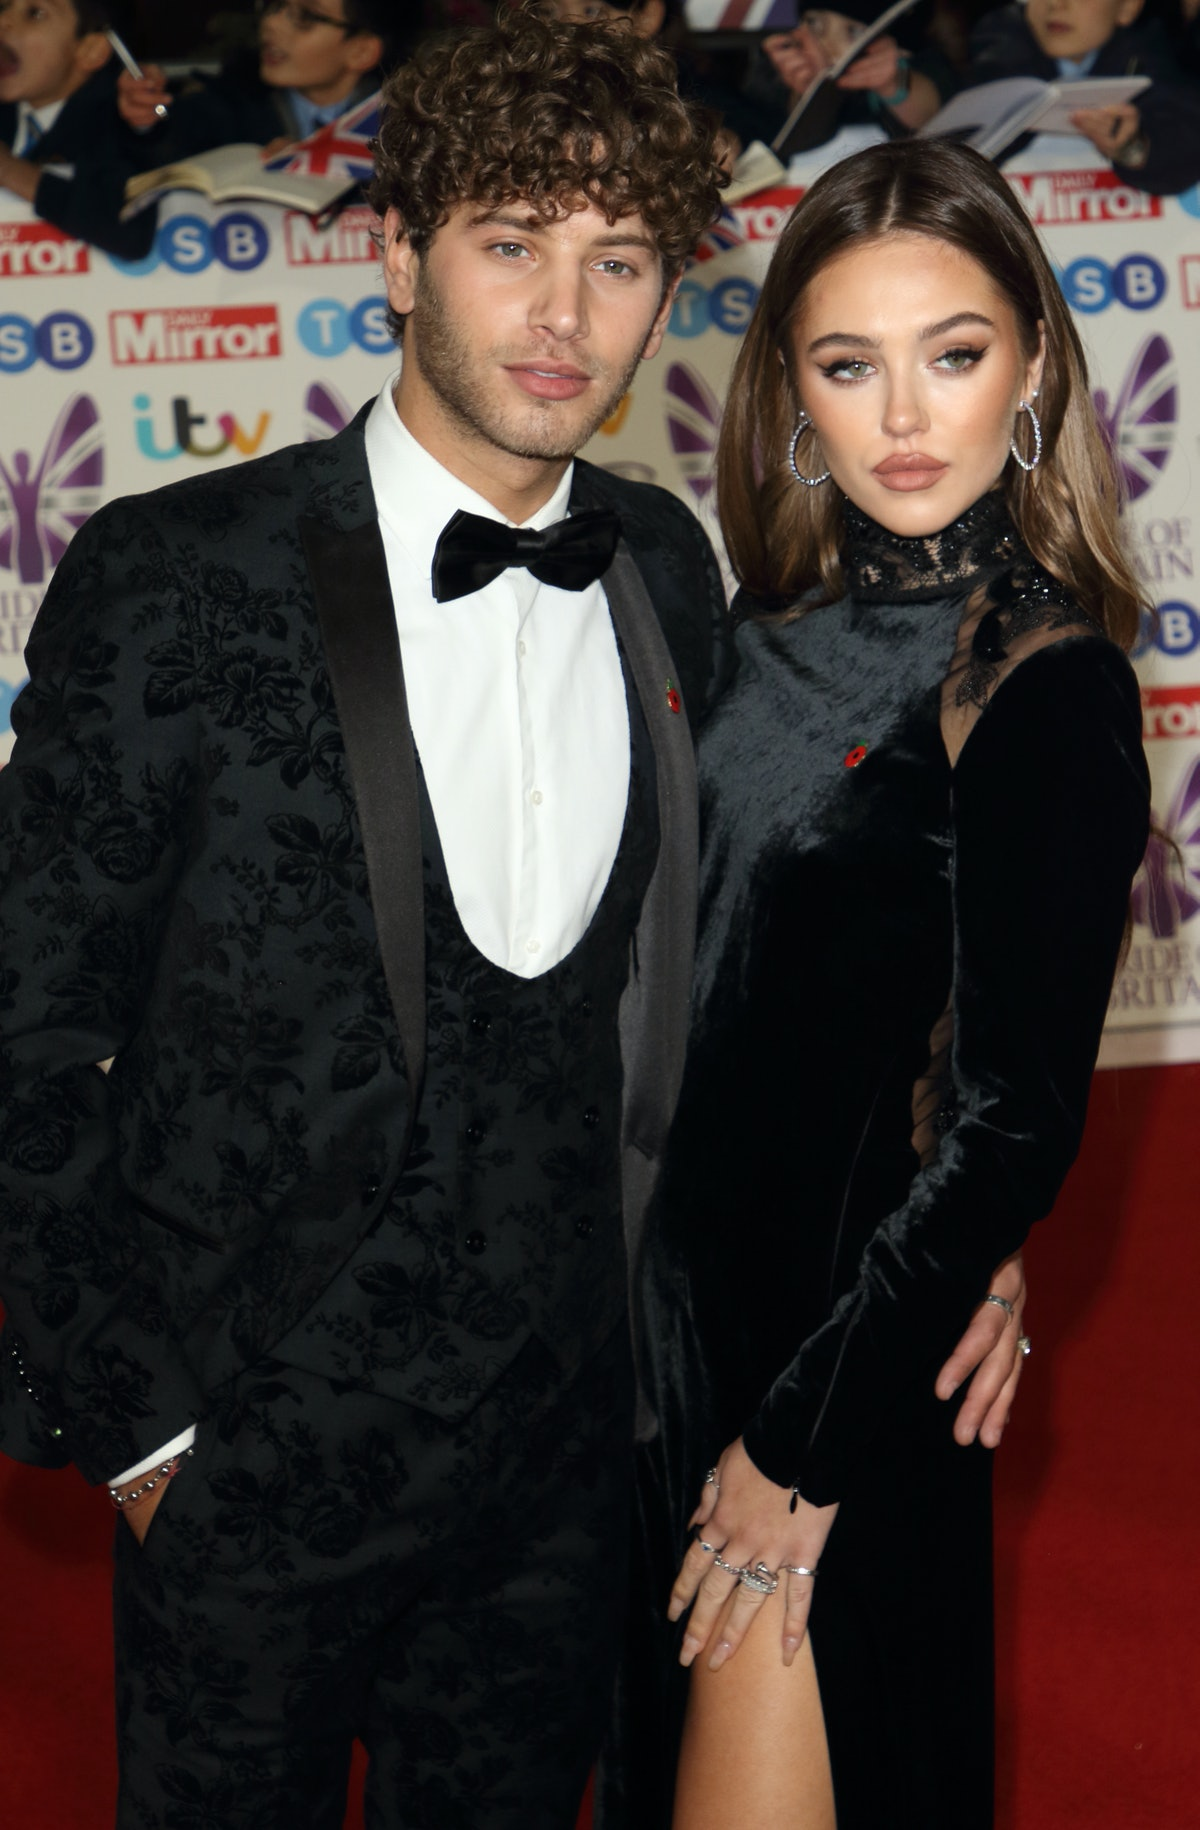 LONDON, -, UNITED KINGDOM - 2019/10/28: Eyal Booker and Delilah Hamlin on the red carpet at The Daily Mirror Pride of Britain Awards, in partnership with TSB, at the Grosvenor House Hotel, Park Lane. (Photo by Keith Mayhew/SOPA Images/LightRocket via Getty Images)